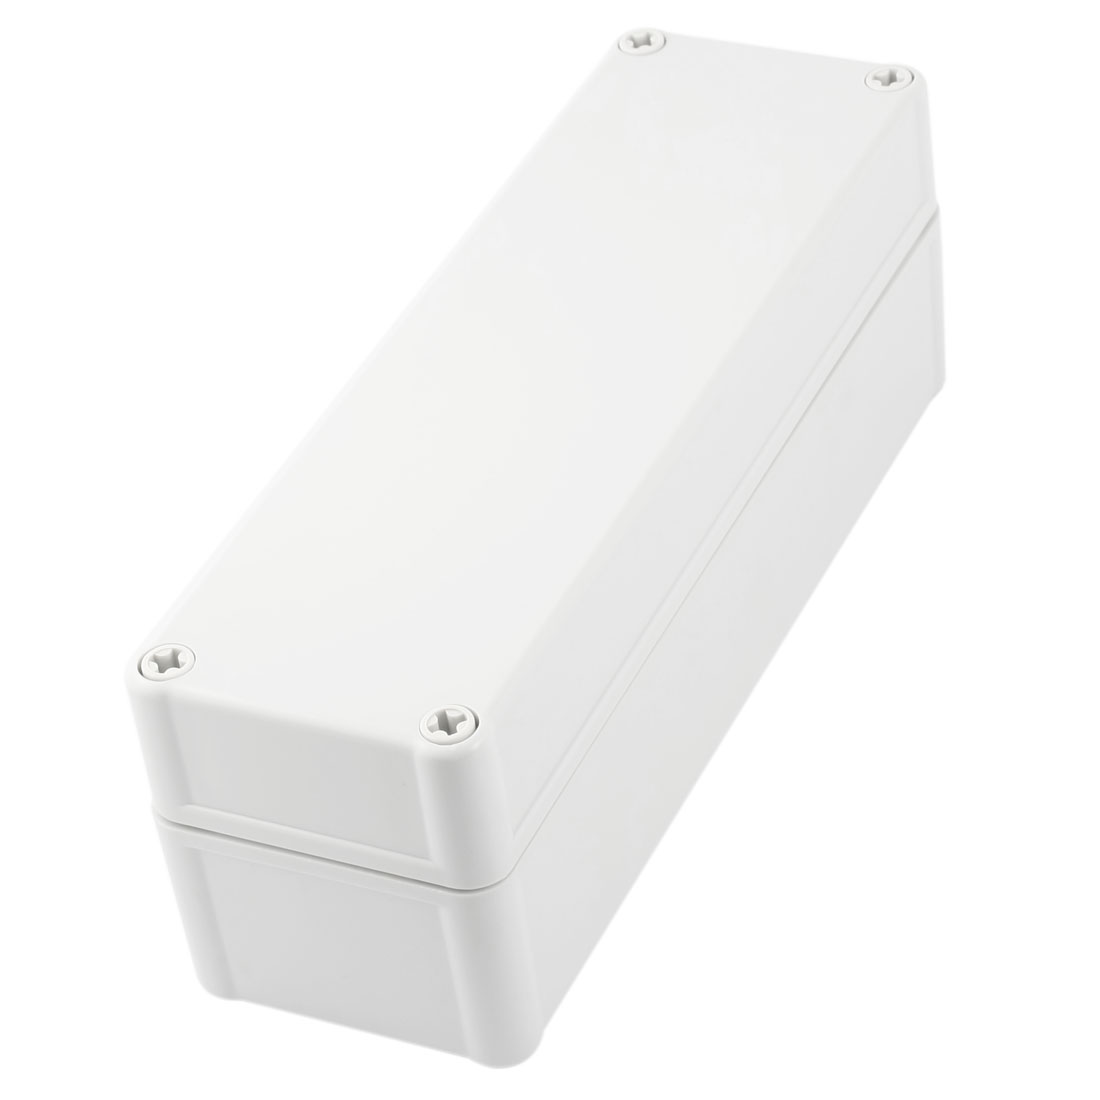 250mm x 80mm x 85mm Dustproof IP65 Plastic Electric Junction Enclose Box Power Protector Case